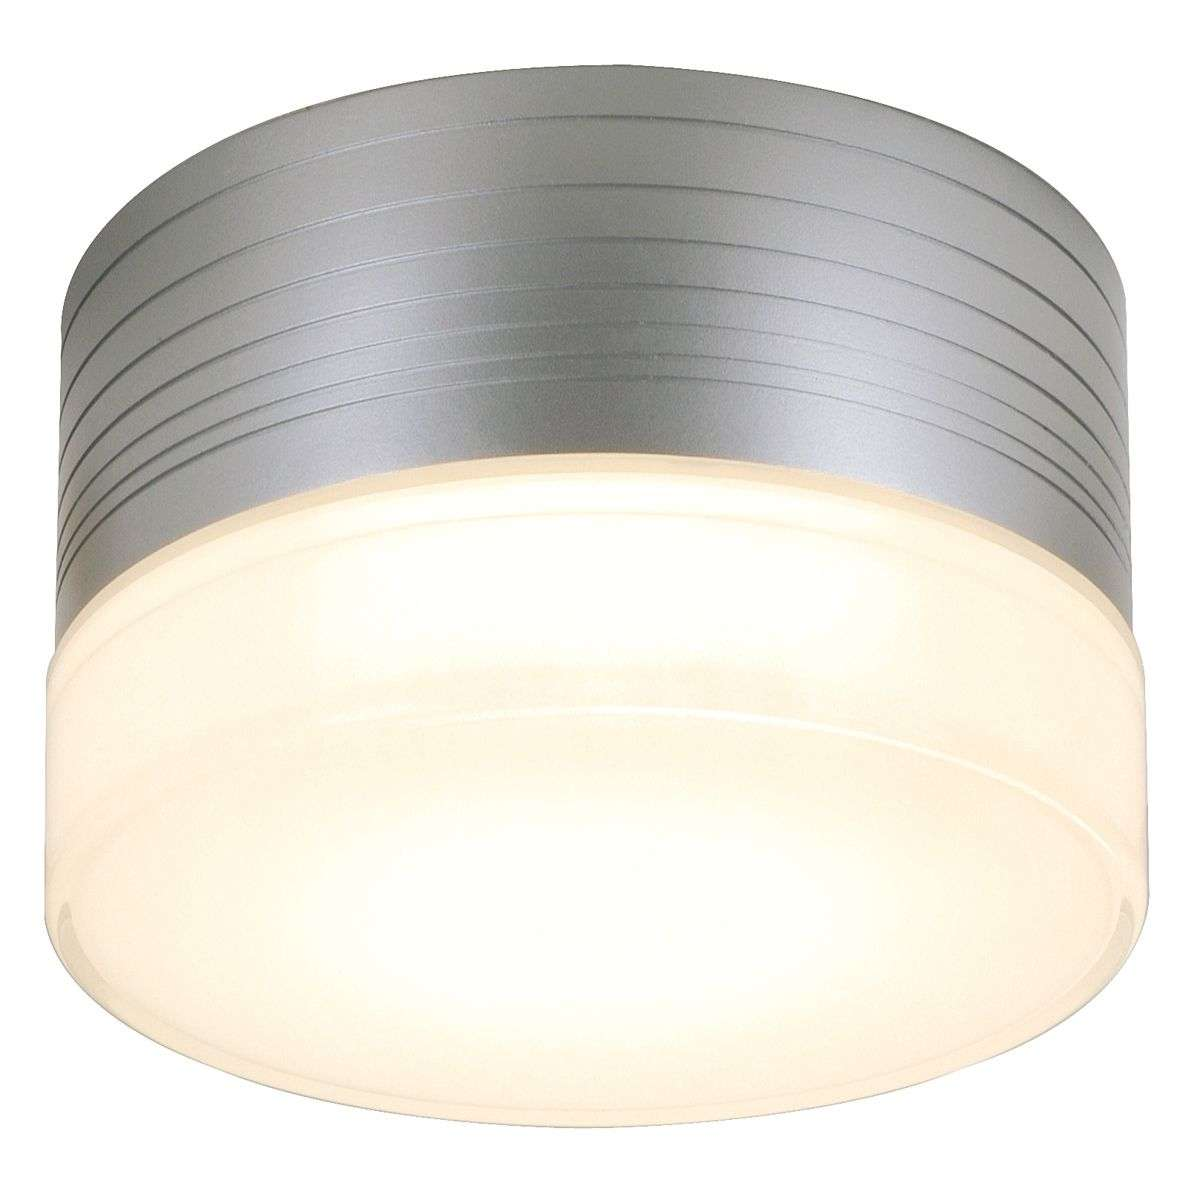 Micro flat outside ceiling light ip44 lights micro flat outside ceiling light ip44 5502073 31 mozeypictures Gallery